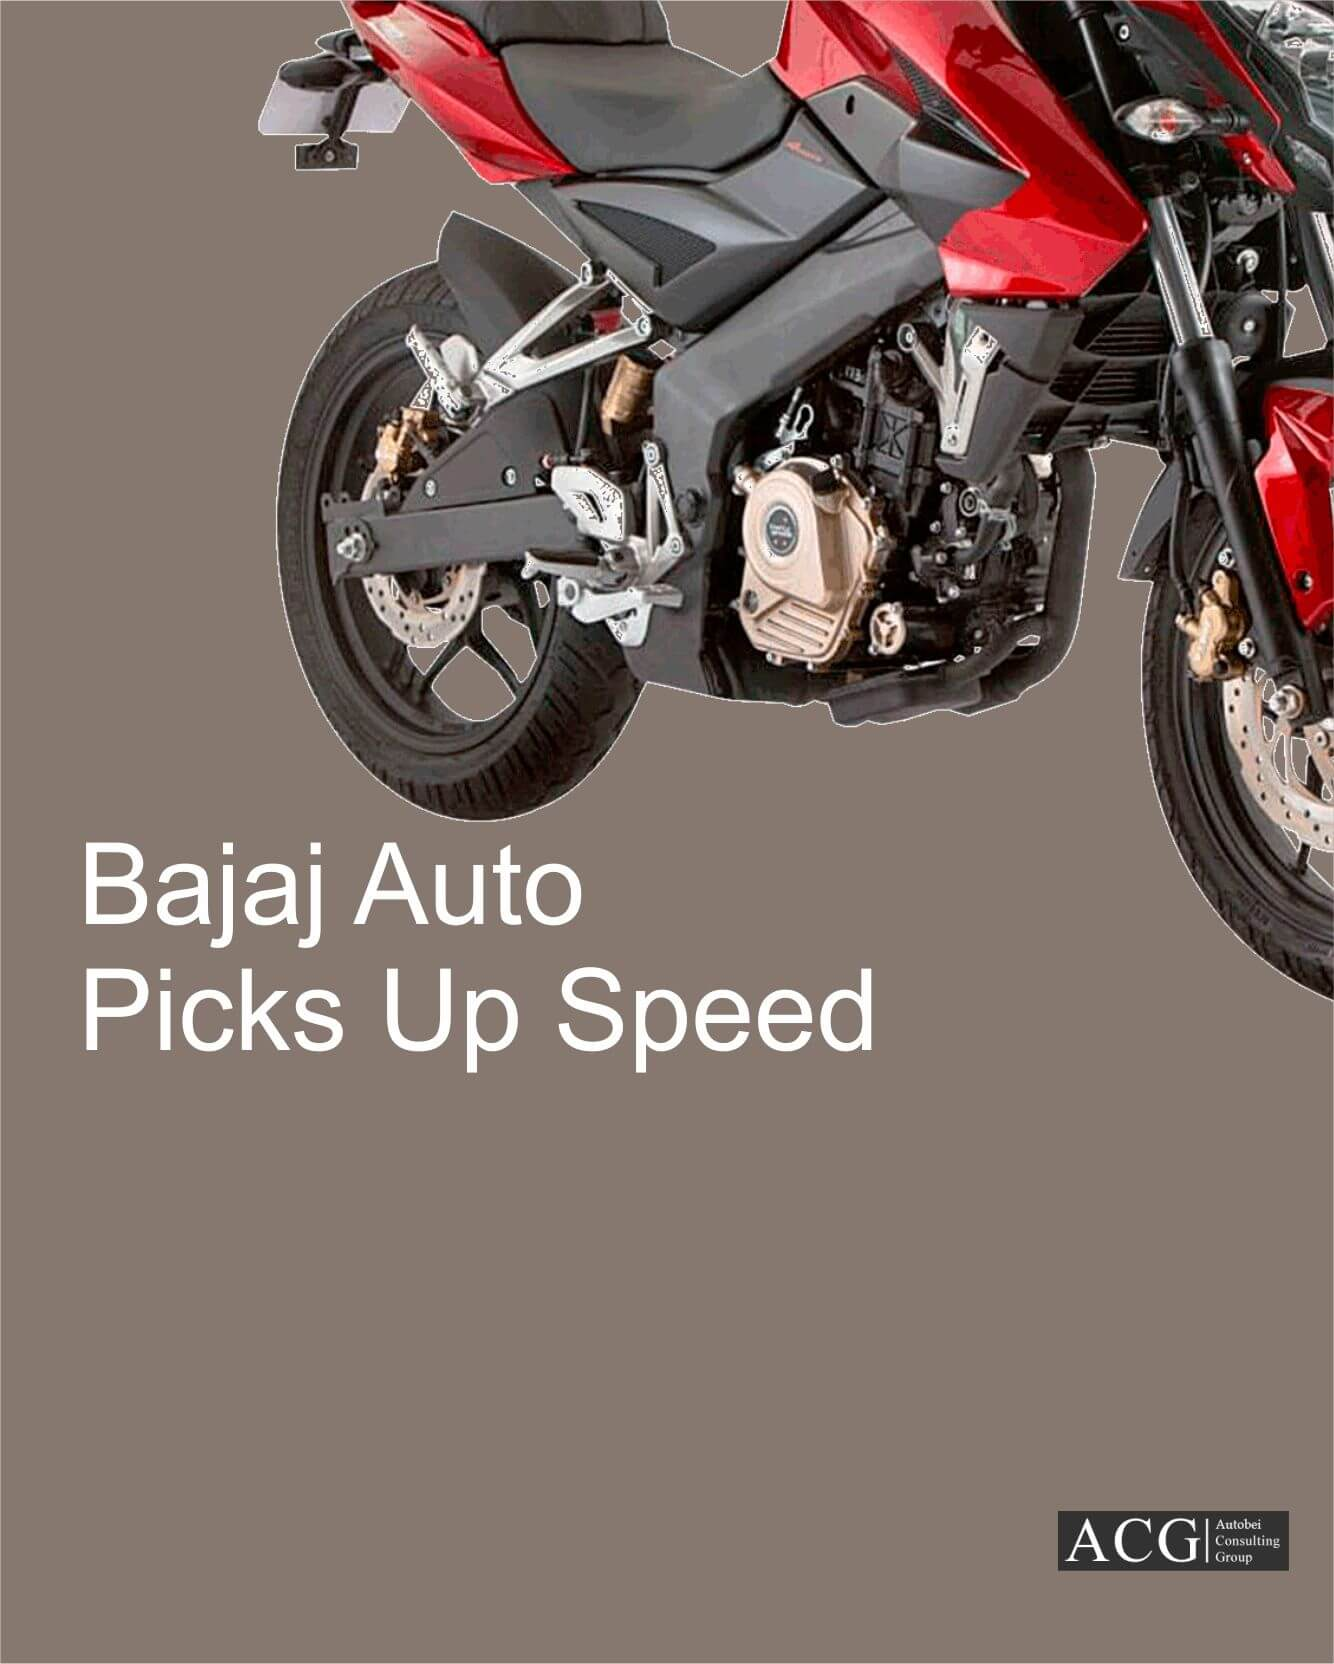 Bajaj Auto Picks Up Speed